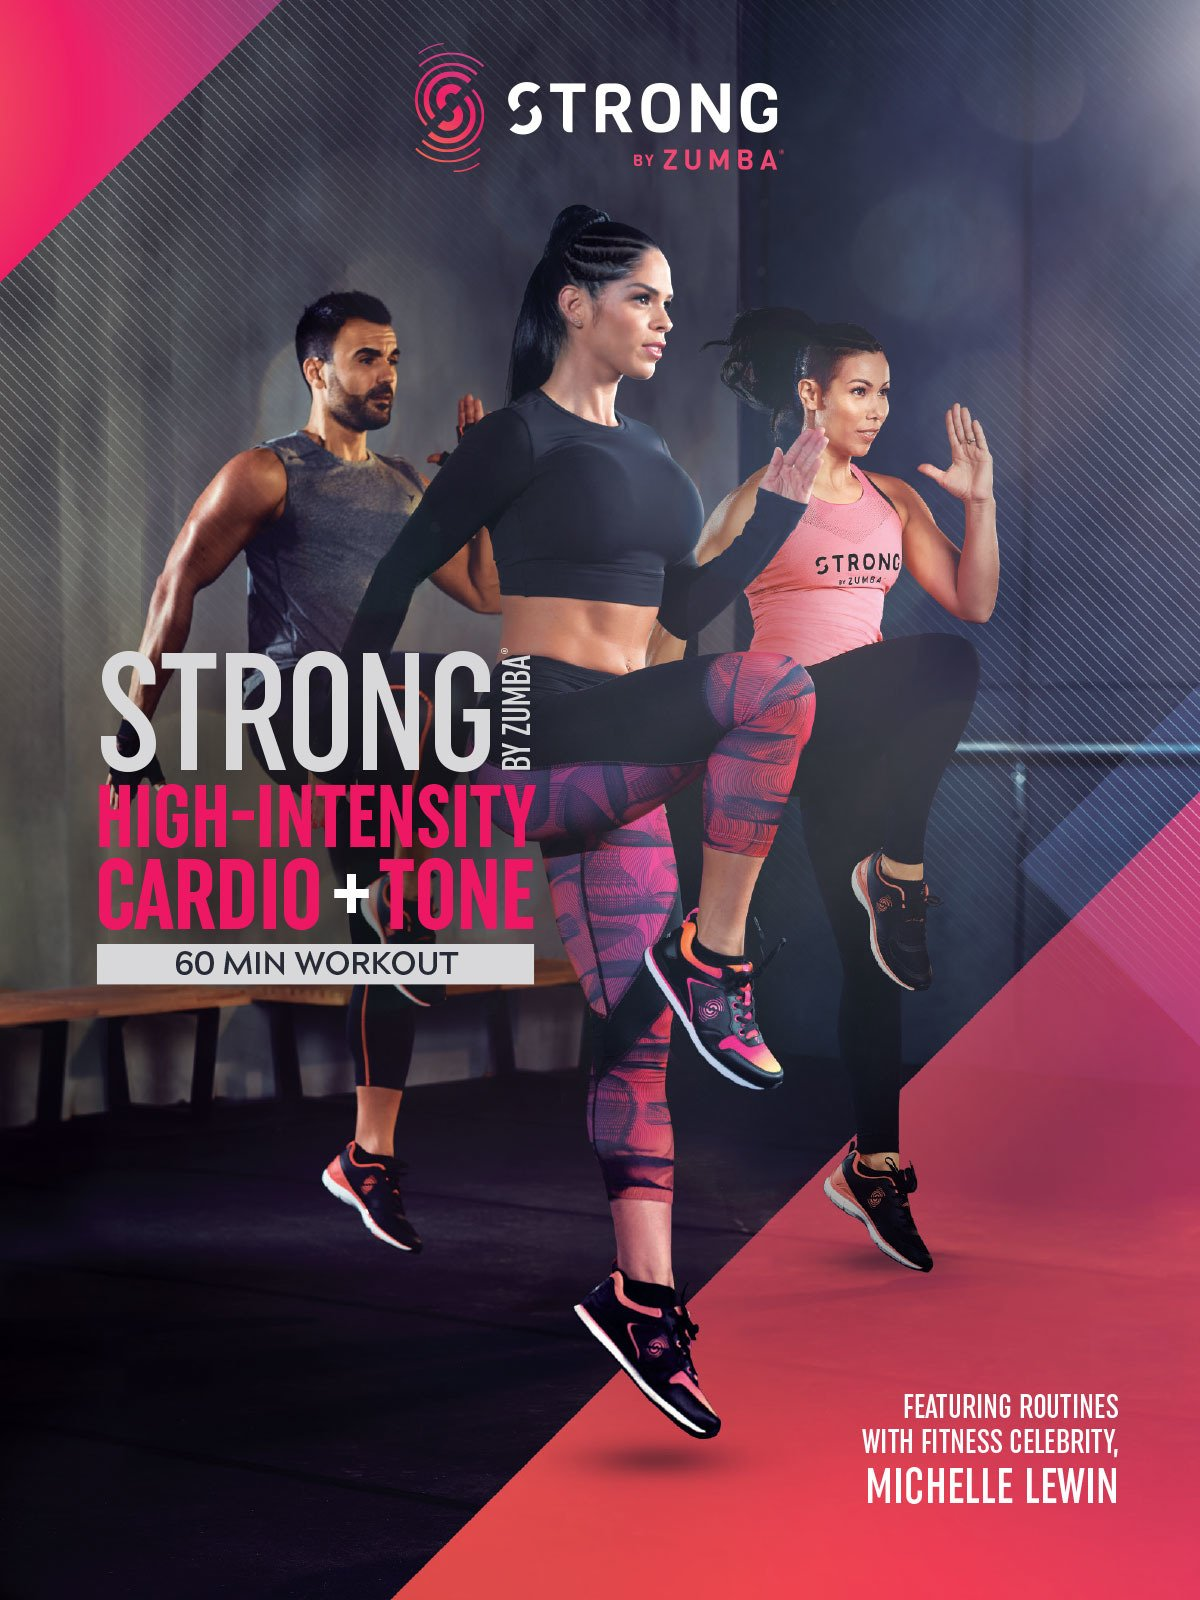 Watch Strong By Zumba High Intensity Cardio And Tone 60 Min Digital Workout Featuring Michelle Lewin Prime Video